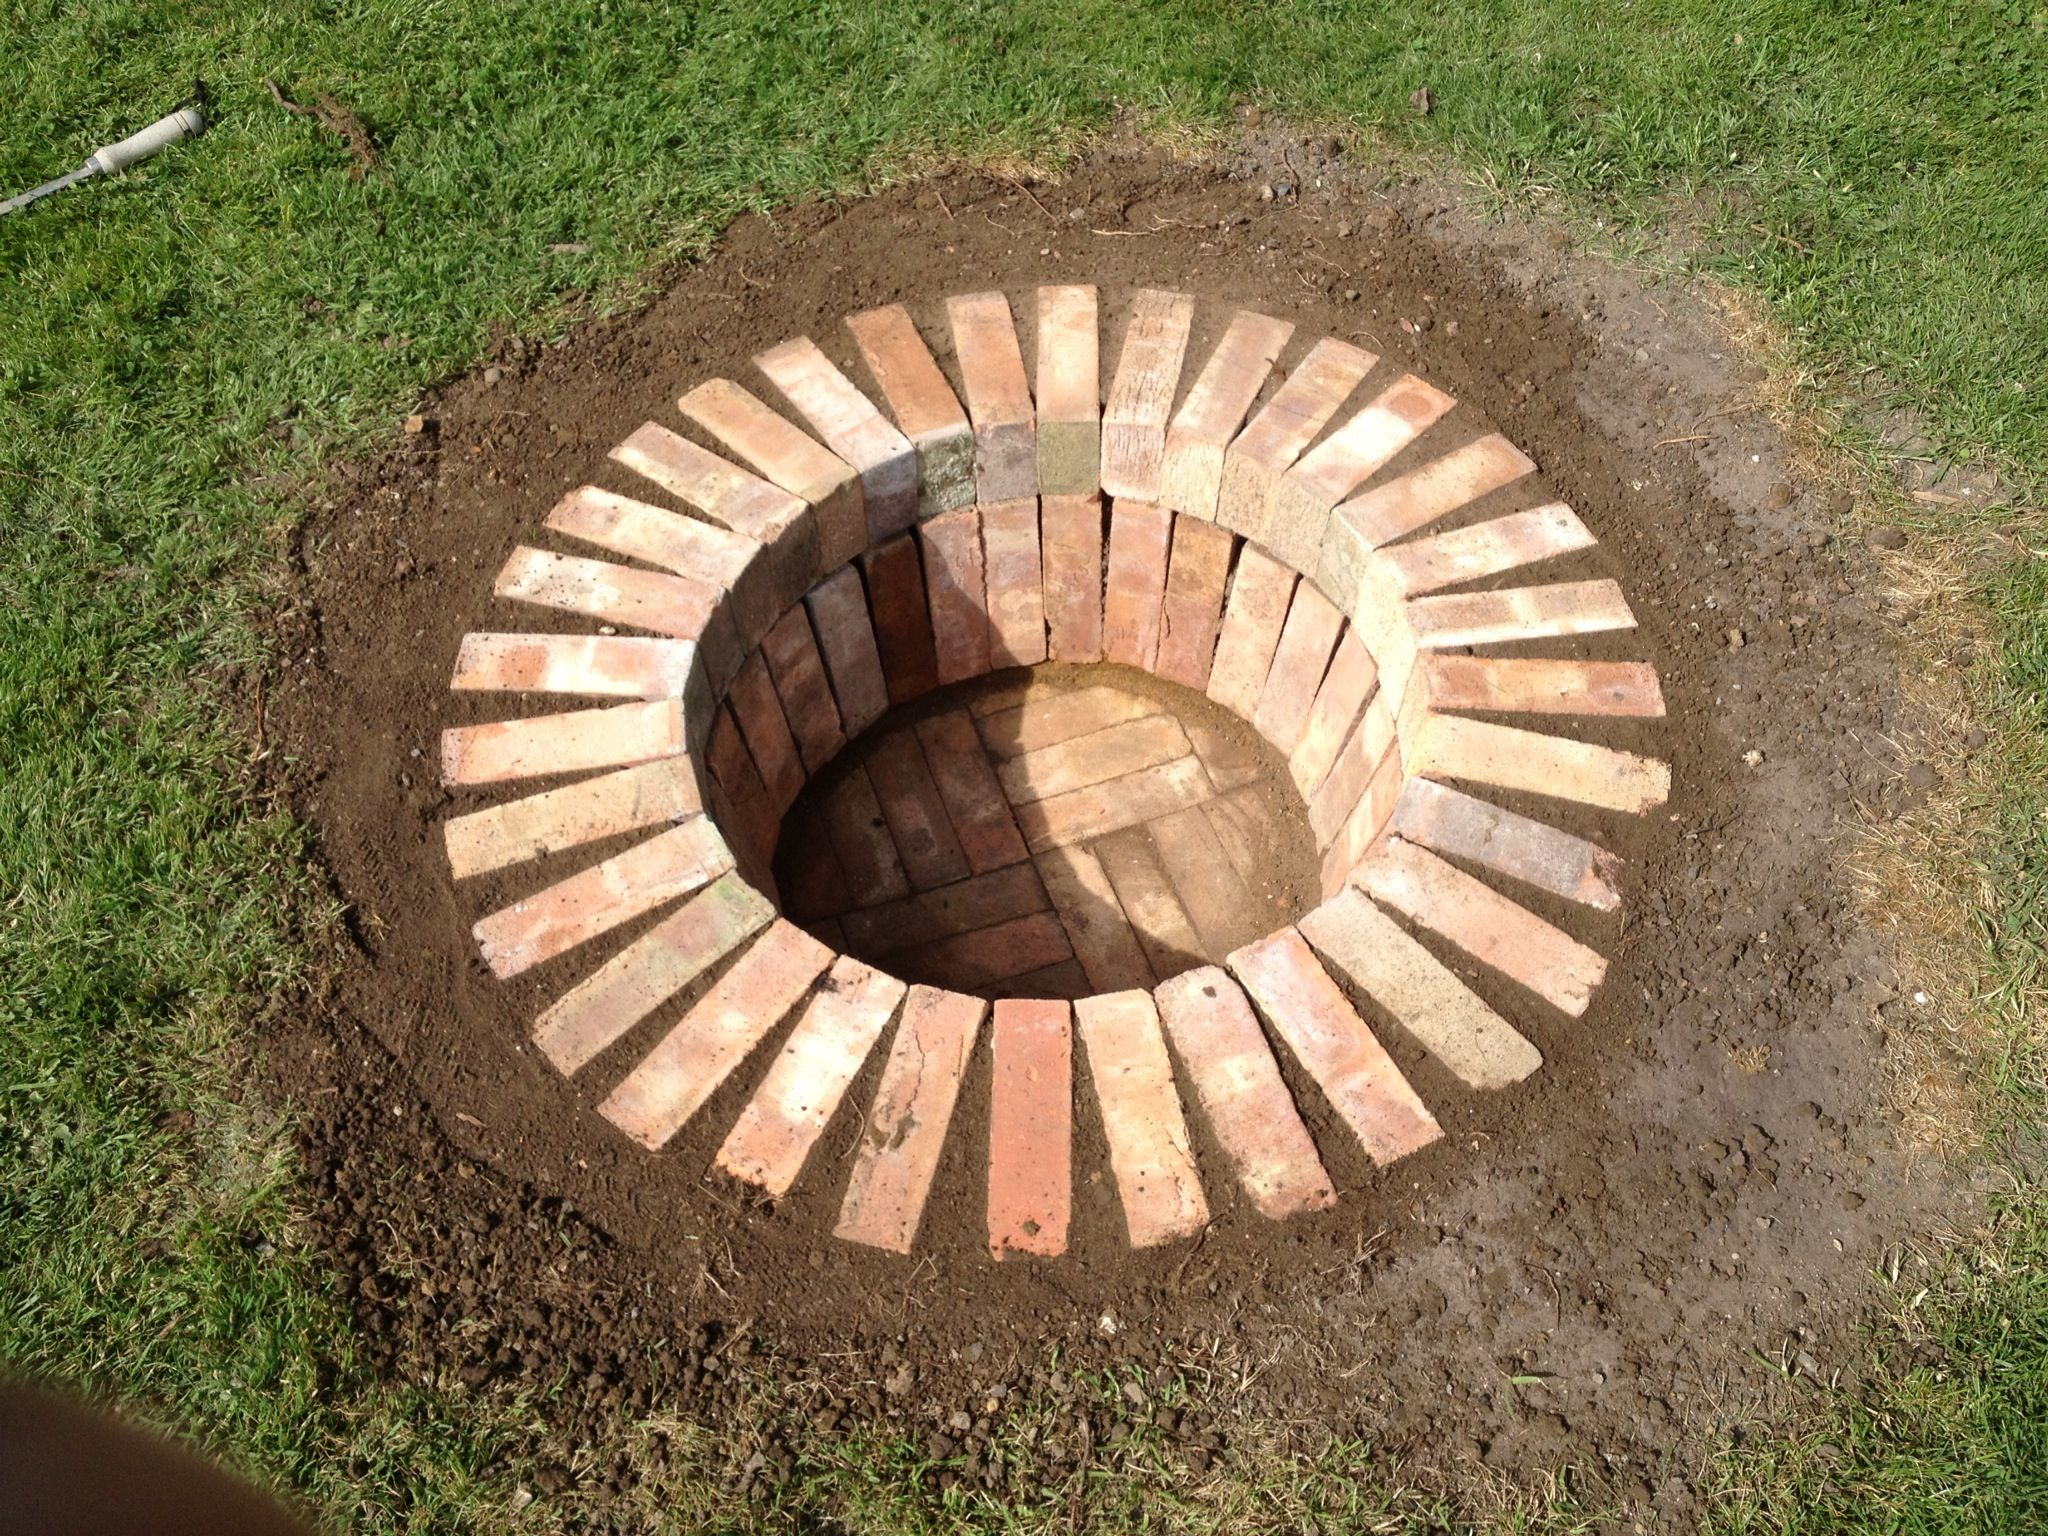 fire pit in the lawn from reclaimed bricks landscaping for